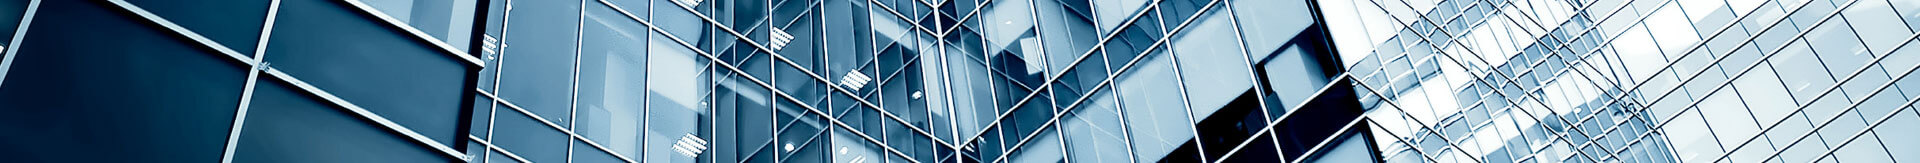 Window Cleaning Sydney Specialists